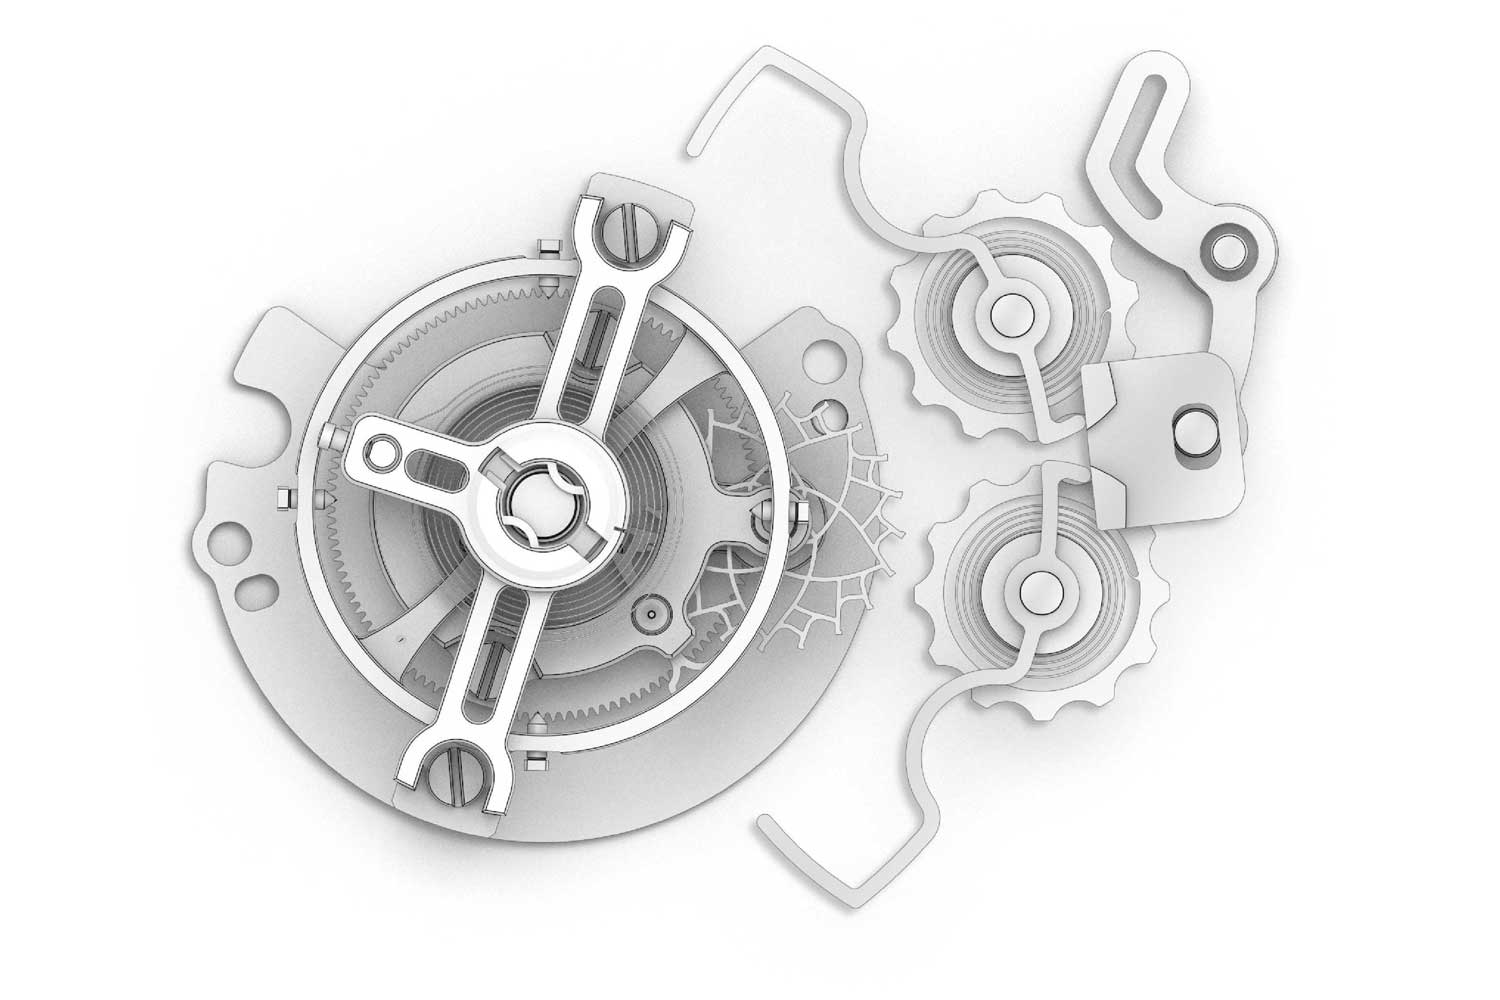 IWC's take on the stop-seconds tourbillon mechanism works as such: When the crown is pulled out, the mechanism is stopped by two levers that grip the balance rim like a set of pliers (Image: IWC Schaffhausen)